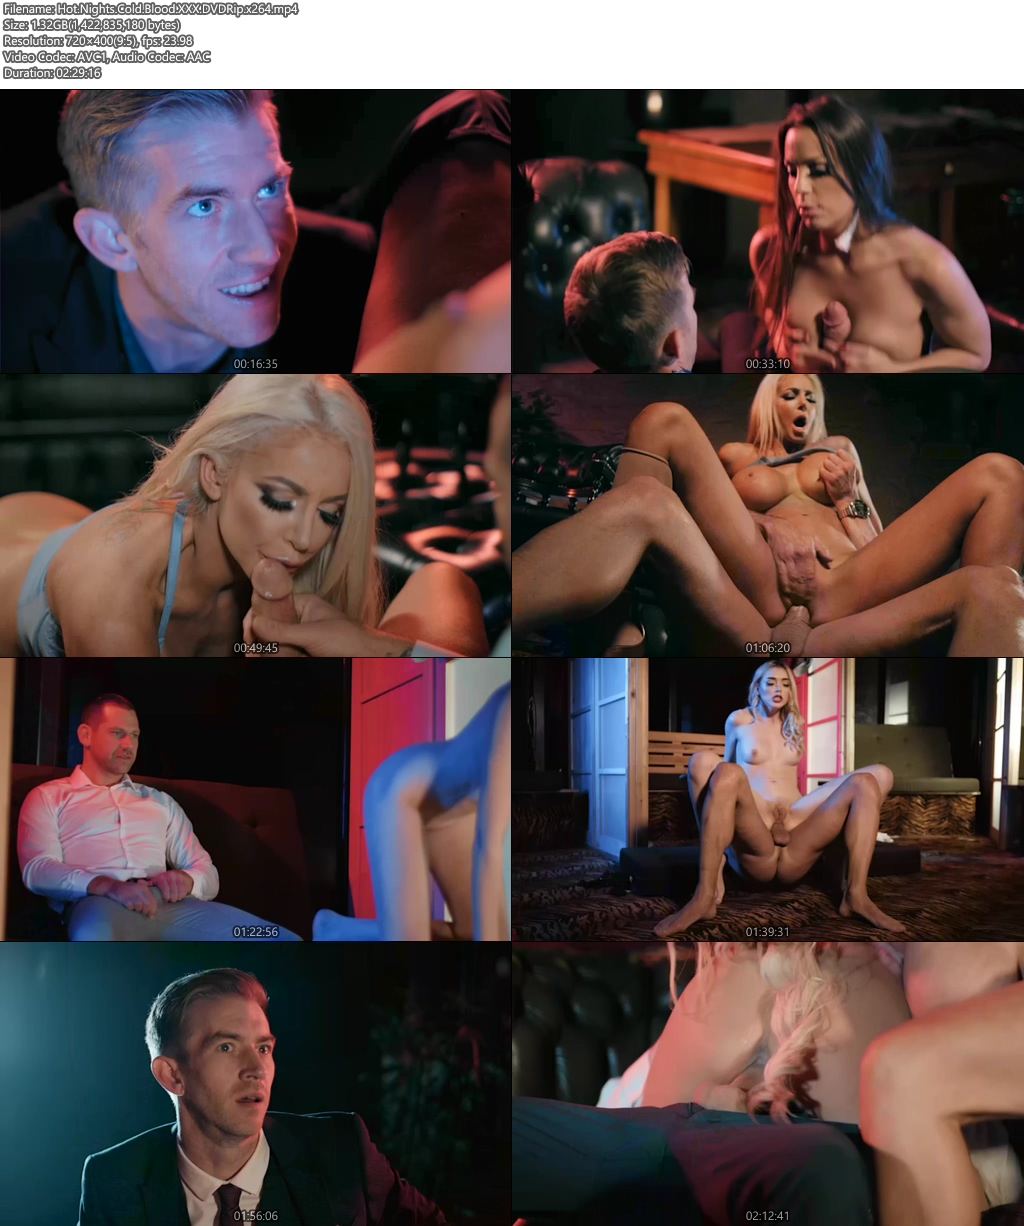 [18+] Hot Nights Cold Blood XXX Movie 2019 DVDRip x264 Screenshot